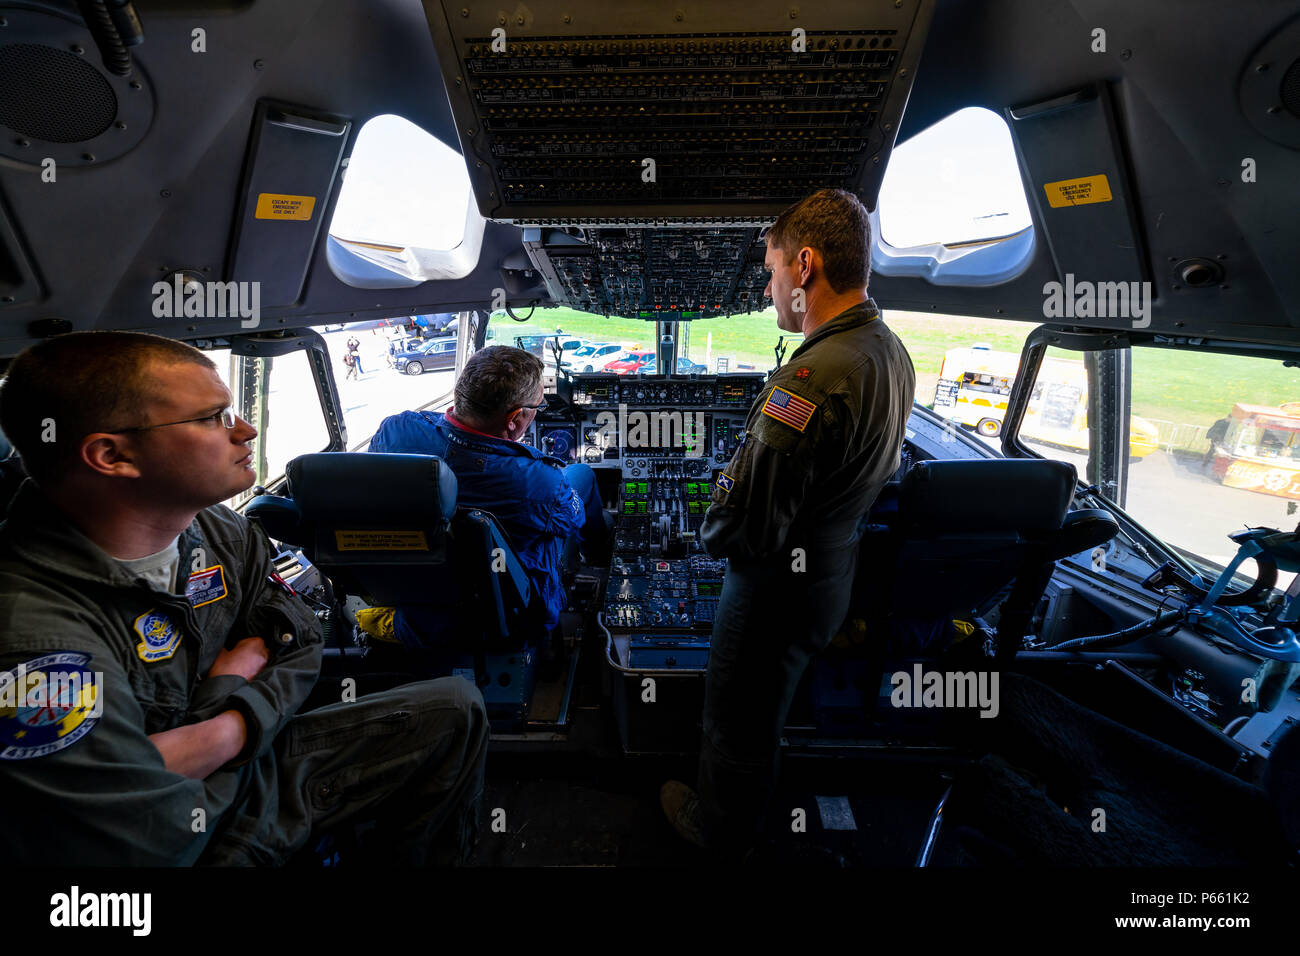 BERLIN - APRIL 27, 2018: Cockpit of strategic and tactical airlifter Boeing C-17 Globemaster III. Exhibition ILA Berlin Air Show 2018 - Stock Image